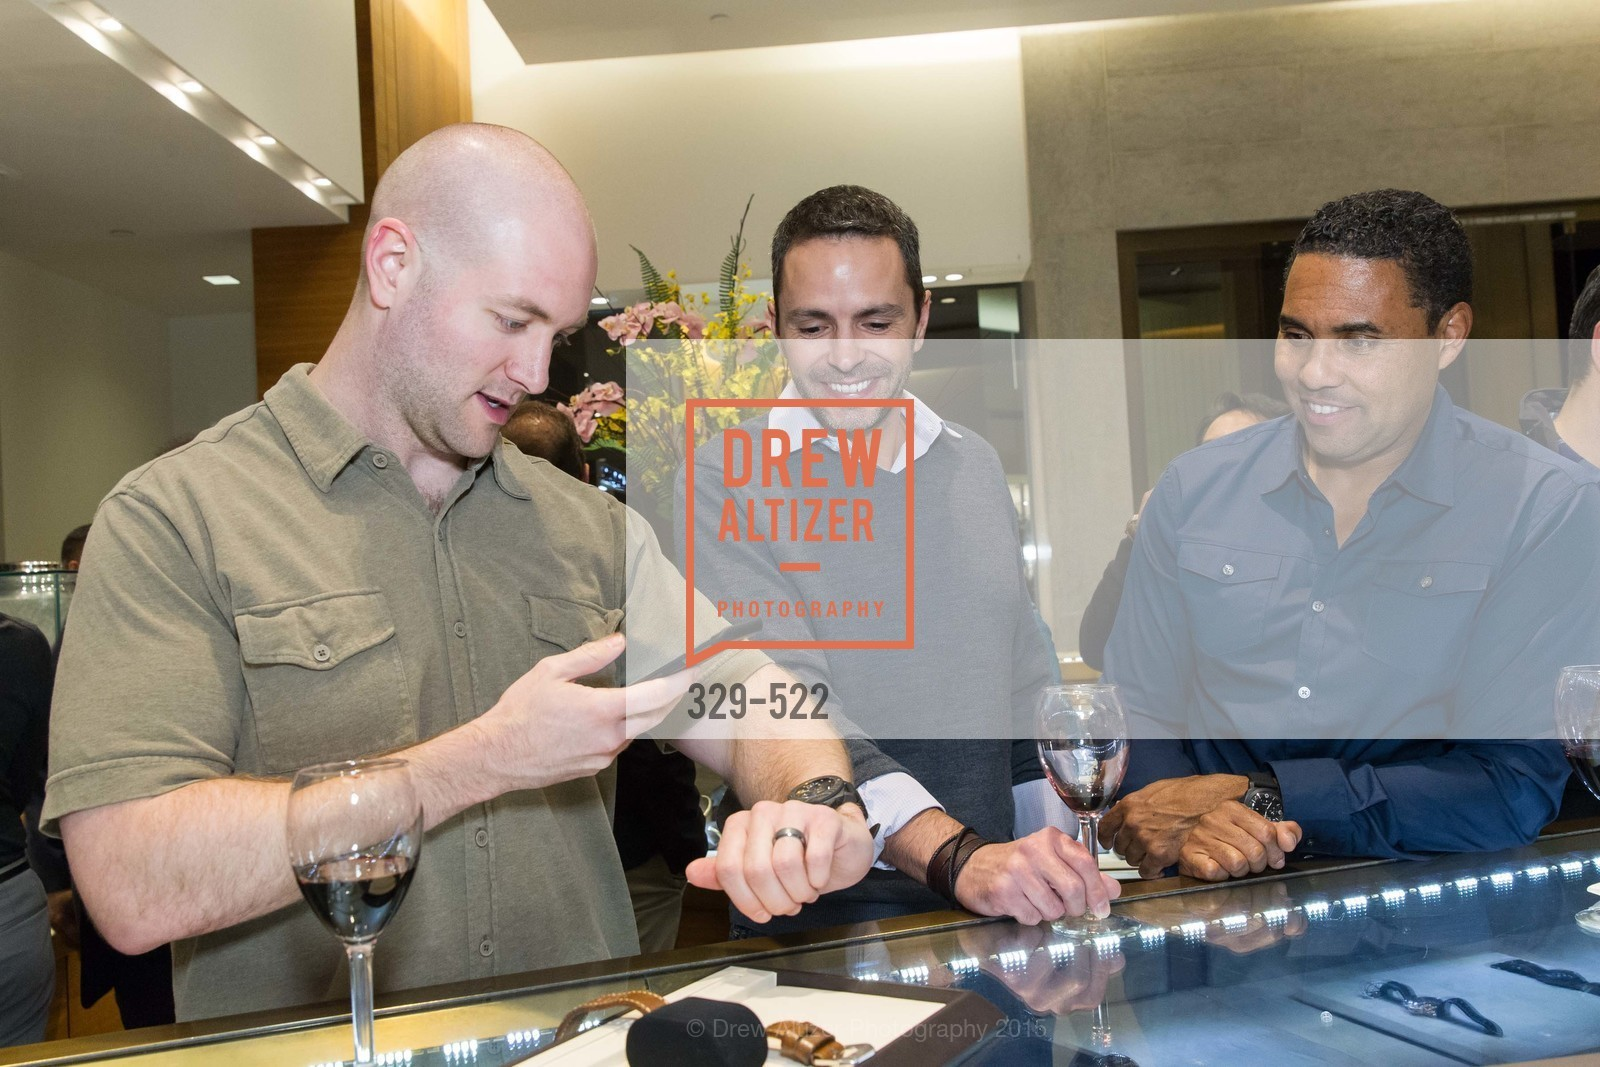 Eric Glenn, Richard D. Smith, Shreve & Co of Palo Alto Presents The Panerai Collections, Shreve. 329 Stanford Shopping Center, November 11th, 2015,Drew Altizer, Drew Altizer Photography, full-service agency, private events, San Francisco photographer, photographer california